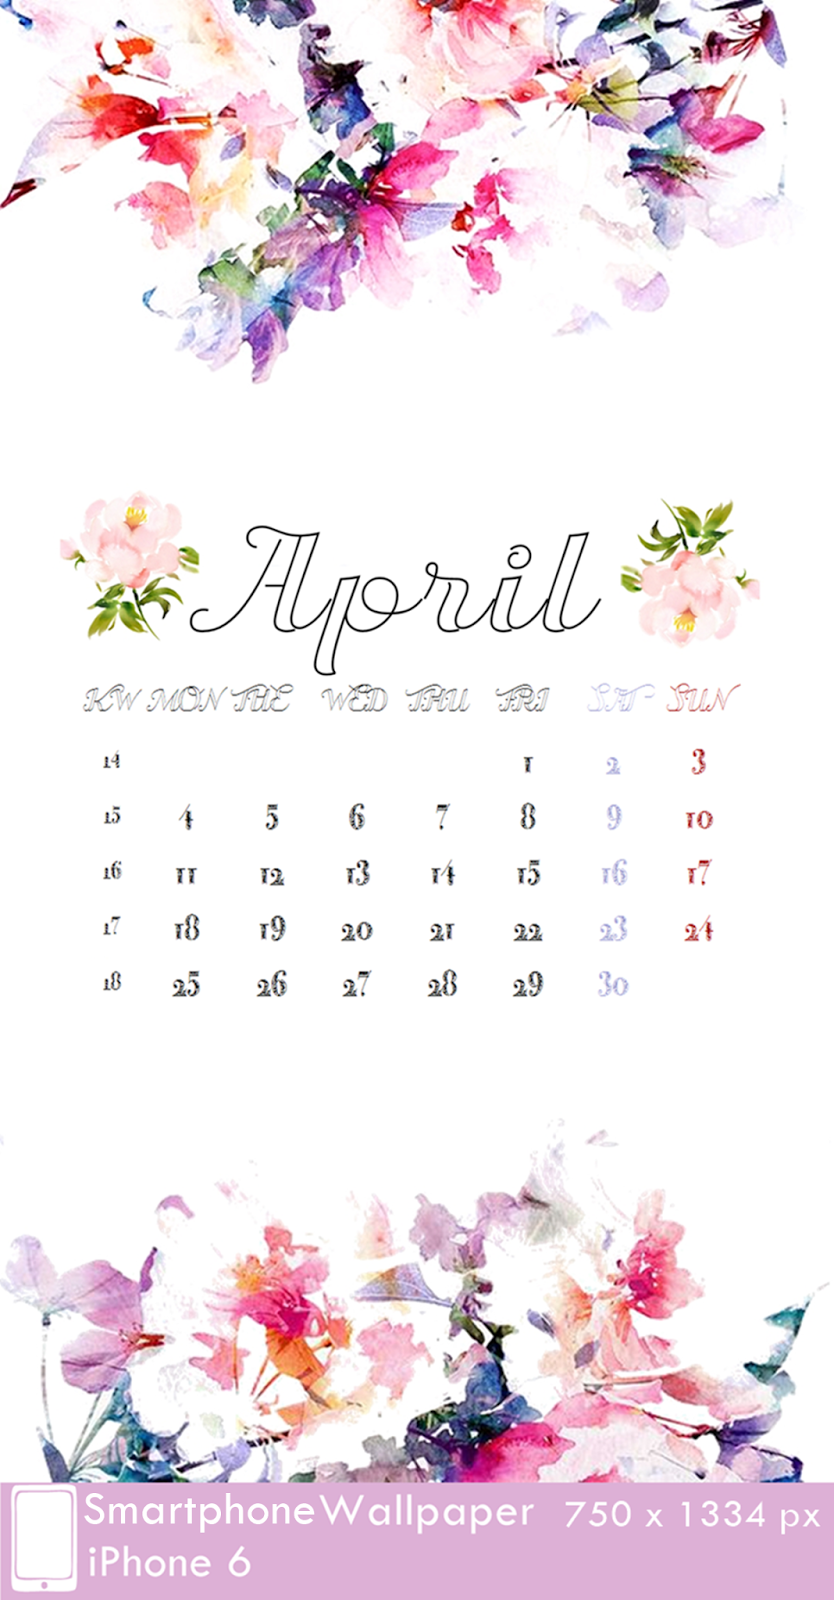 iPhone 6 Wallpaper Calendar 4 April 750 x 1334 px